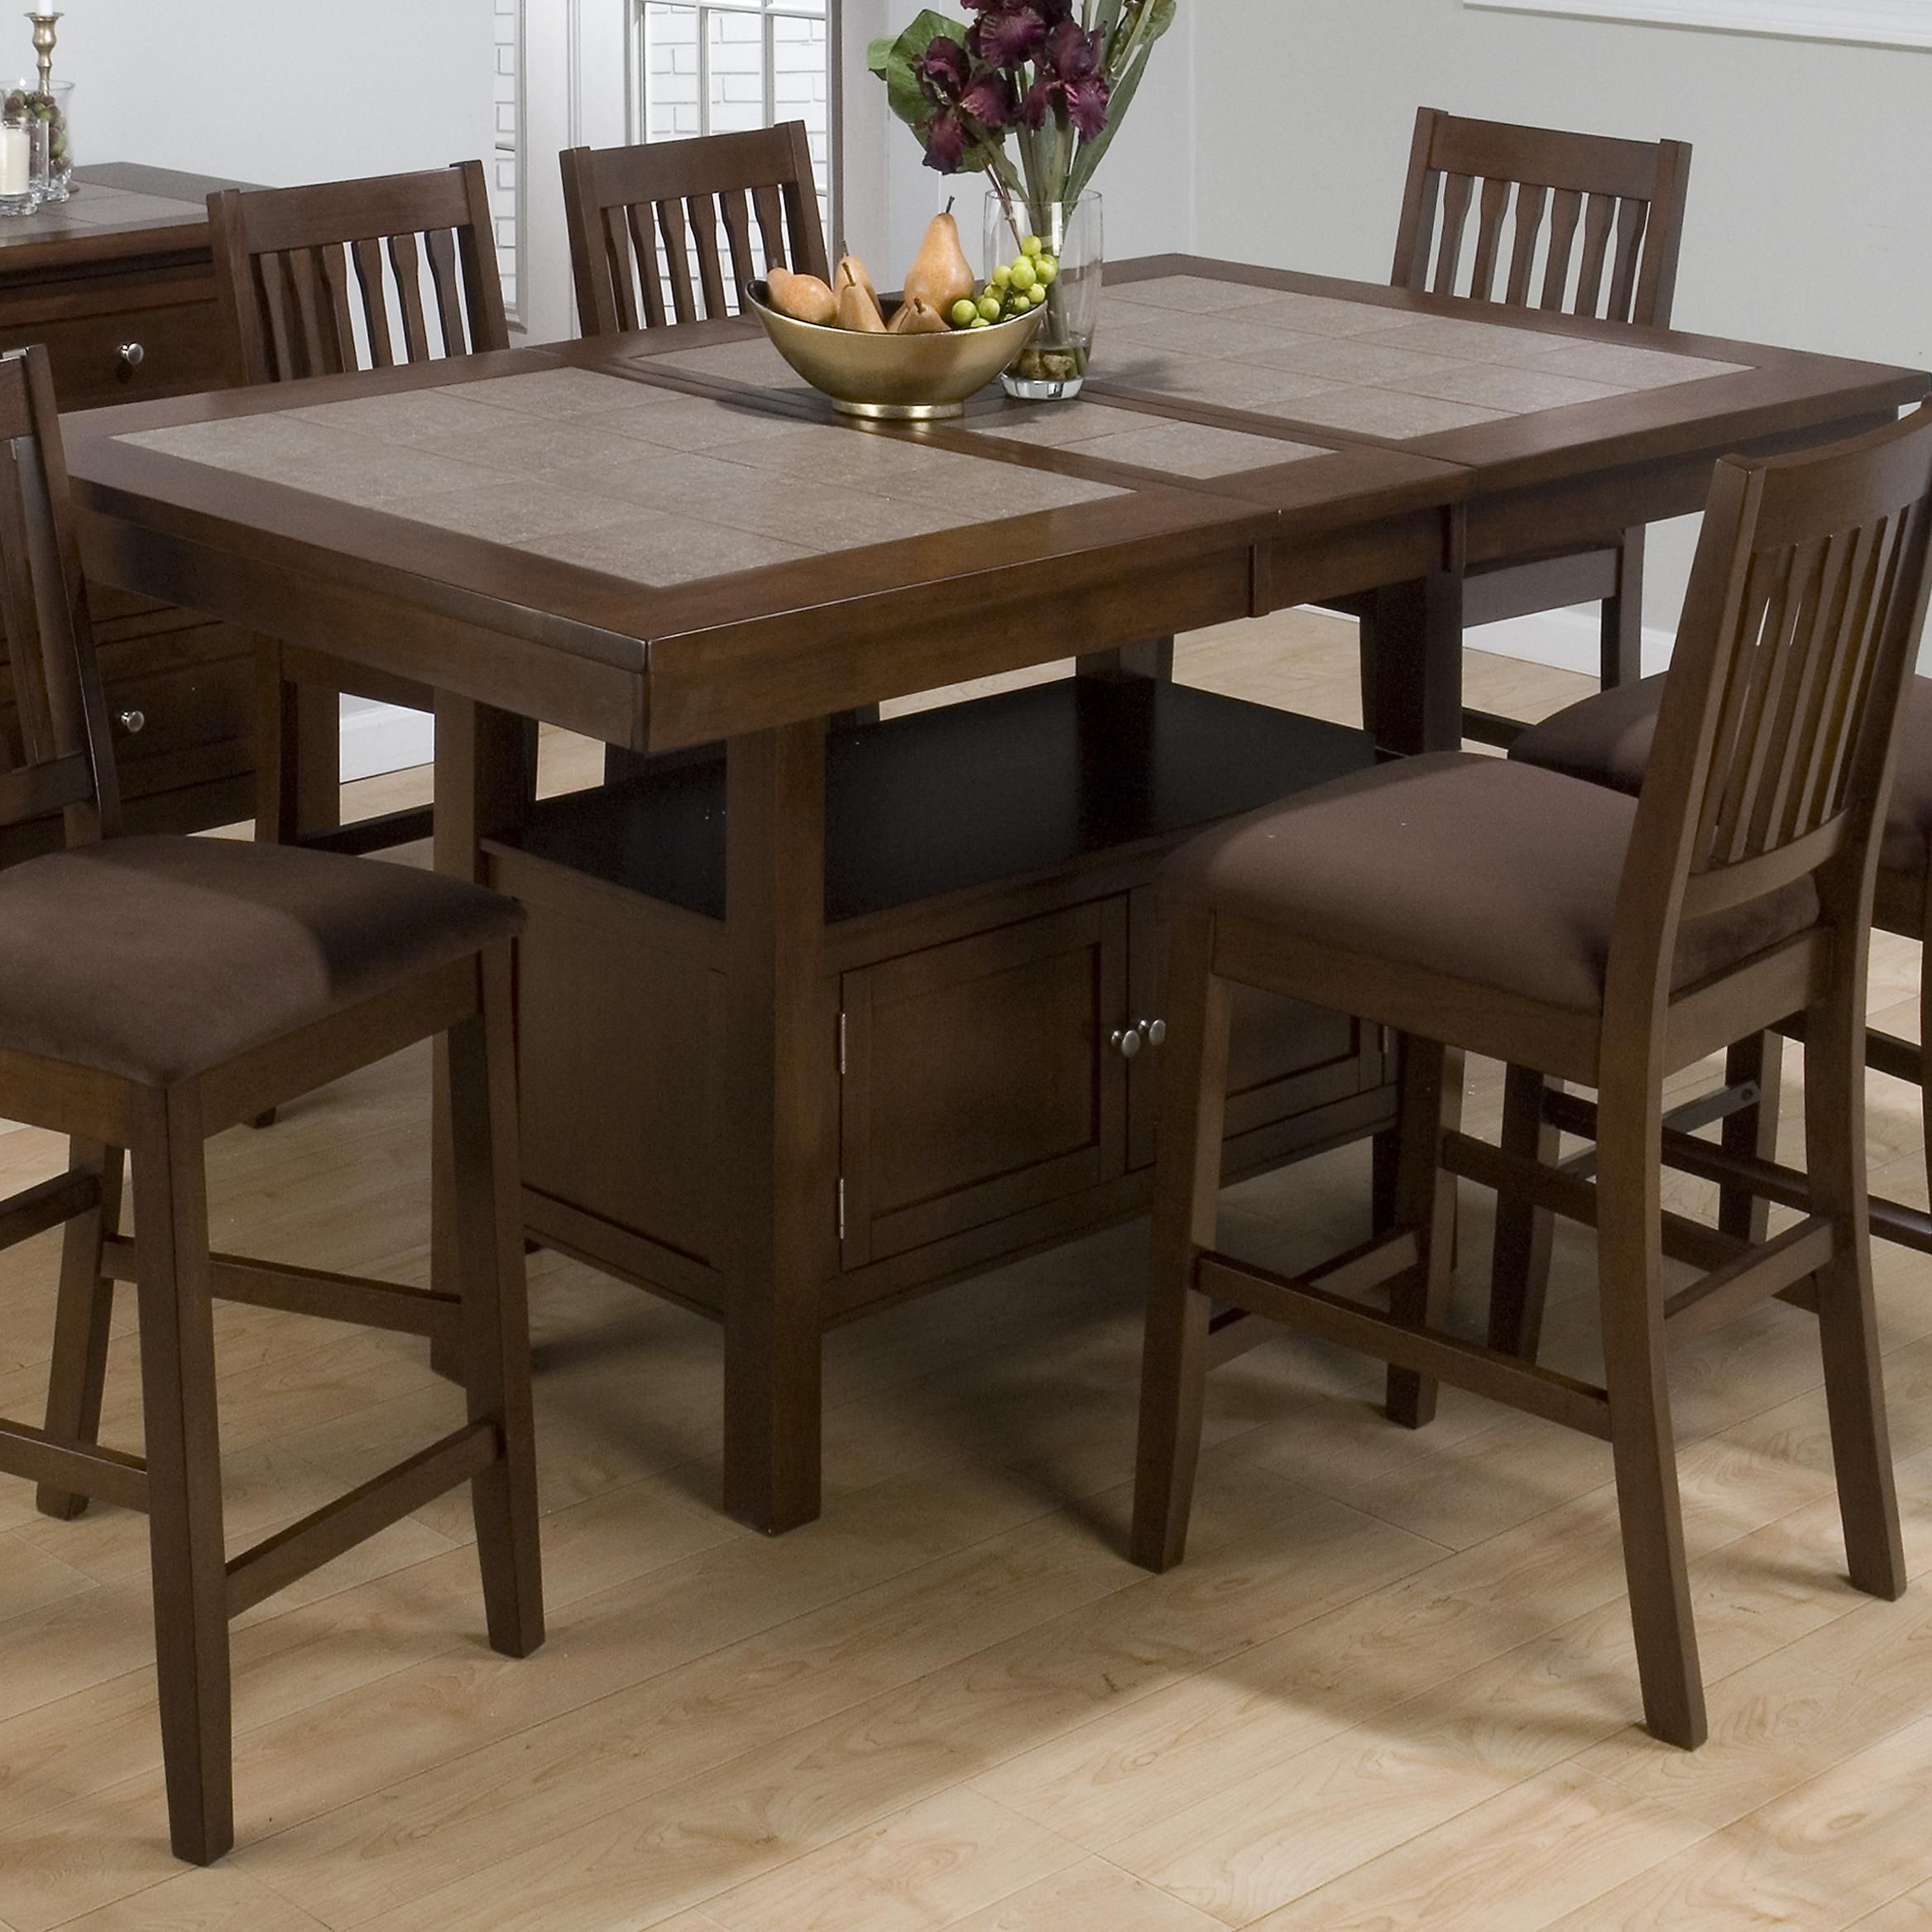 Nice Kitchen Table Sets: Beautiful Brown Counter Height Table. Perfect For The